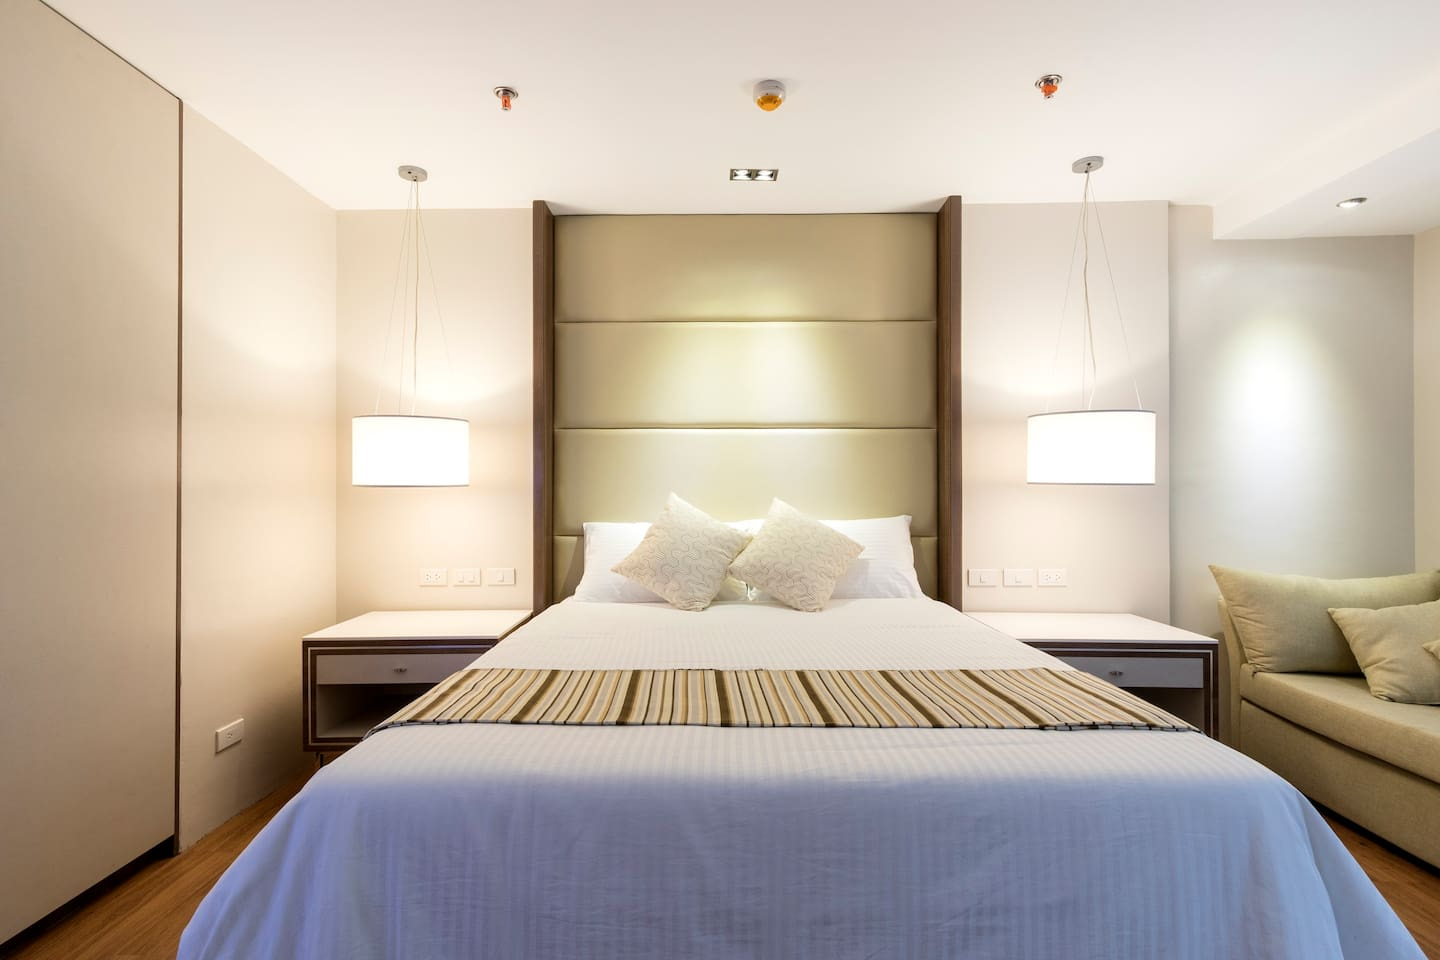 Queen size bed with padded headboard. Pendant light switches and socket are located above the 2 side tables.